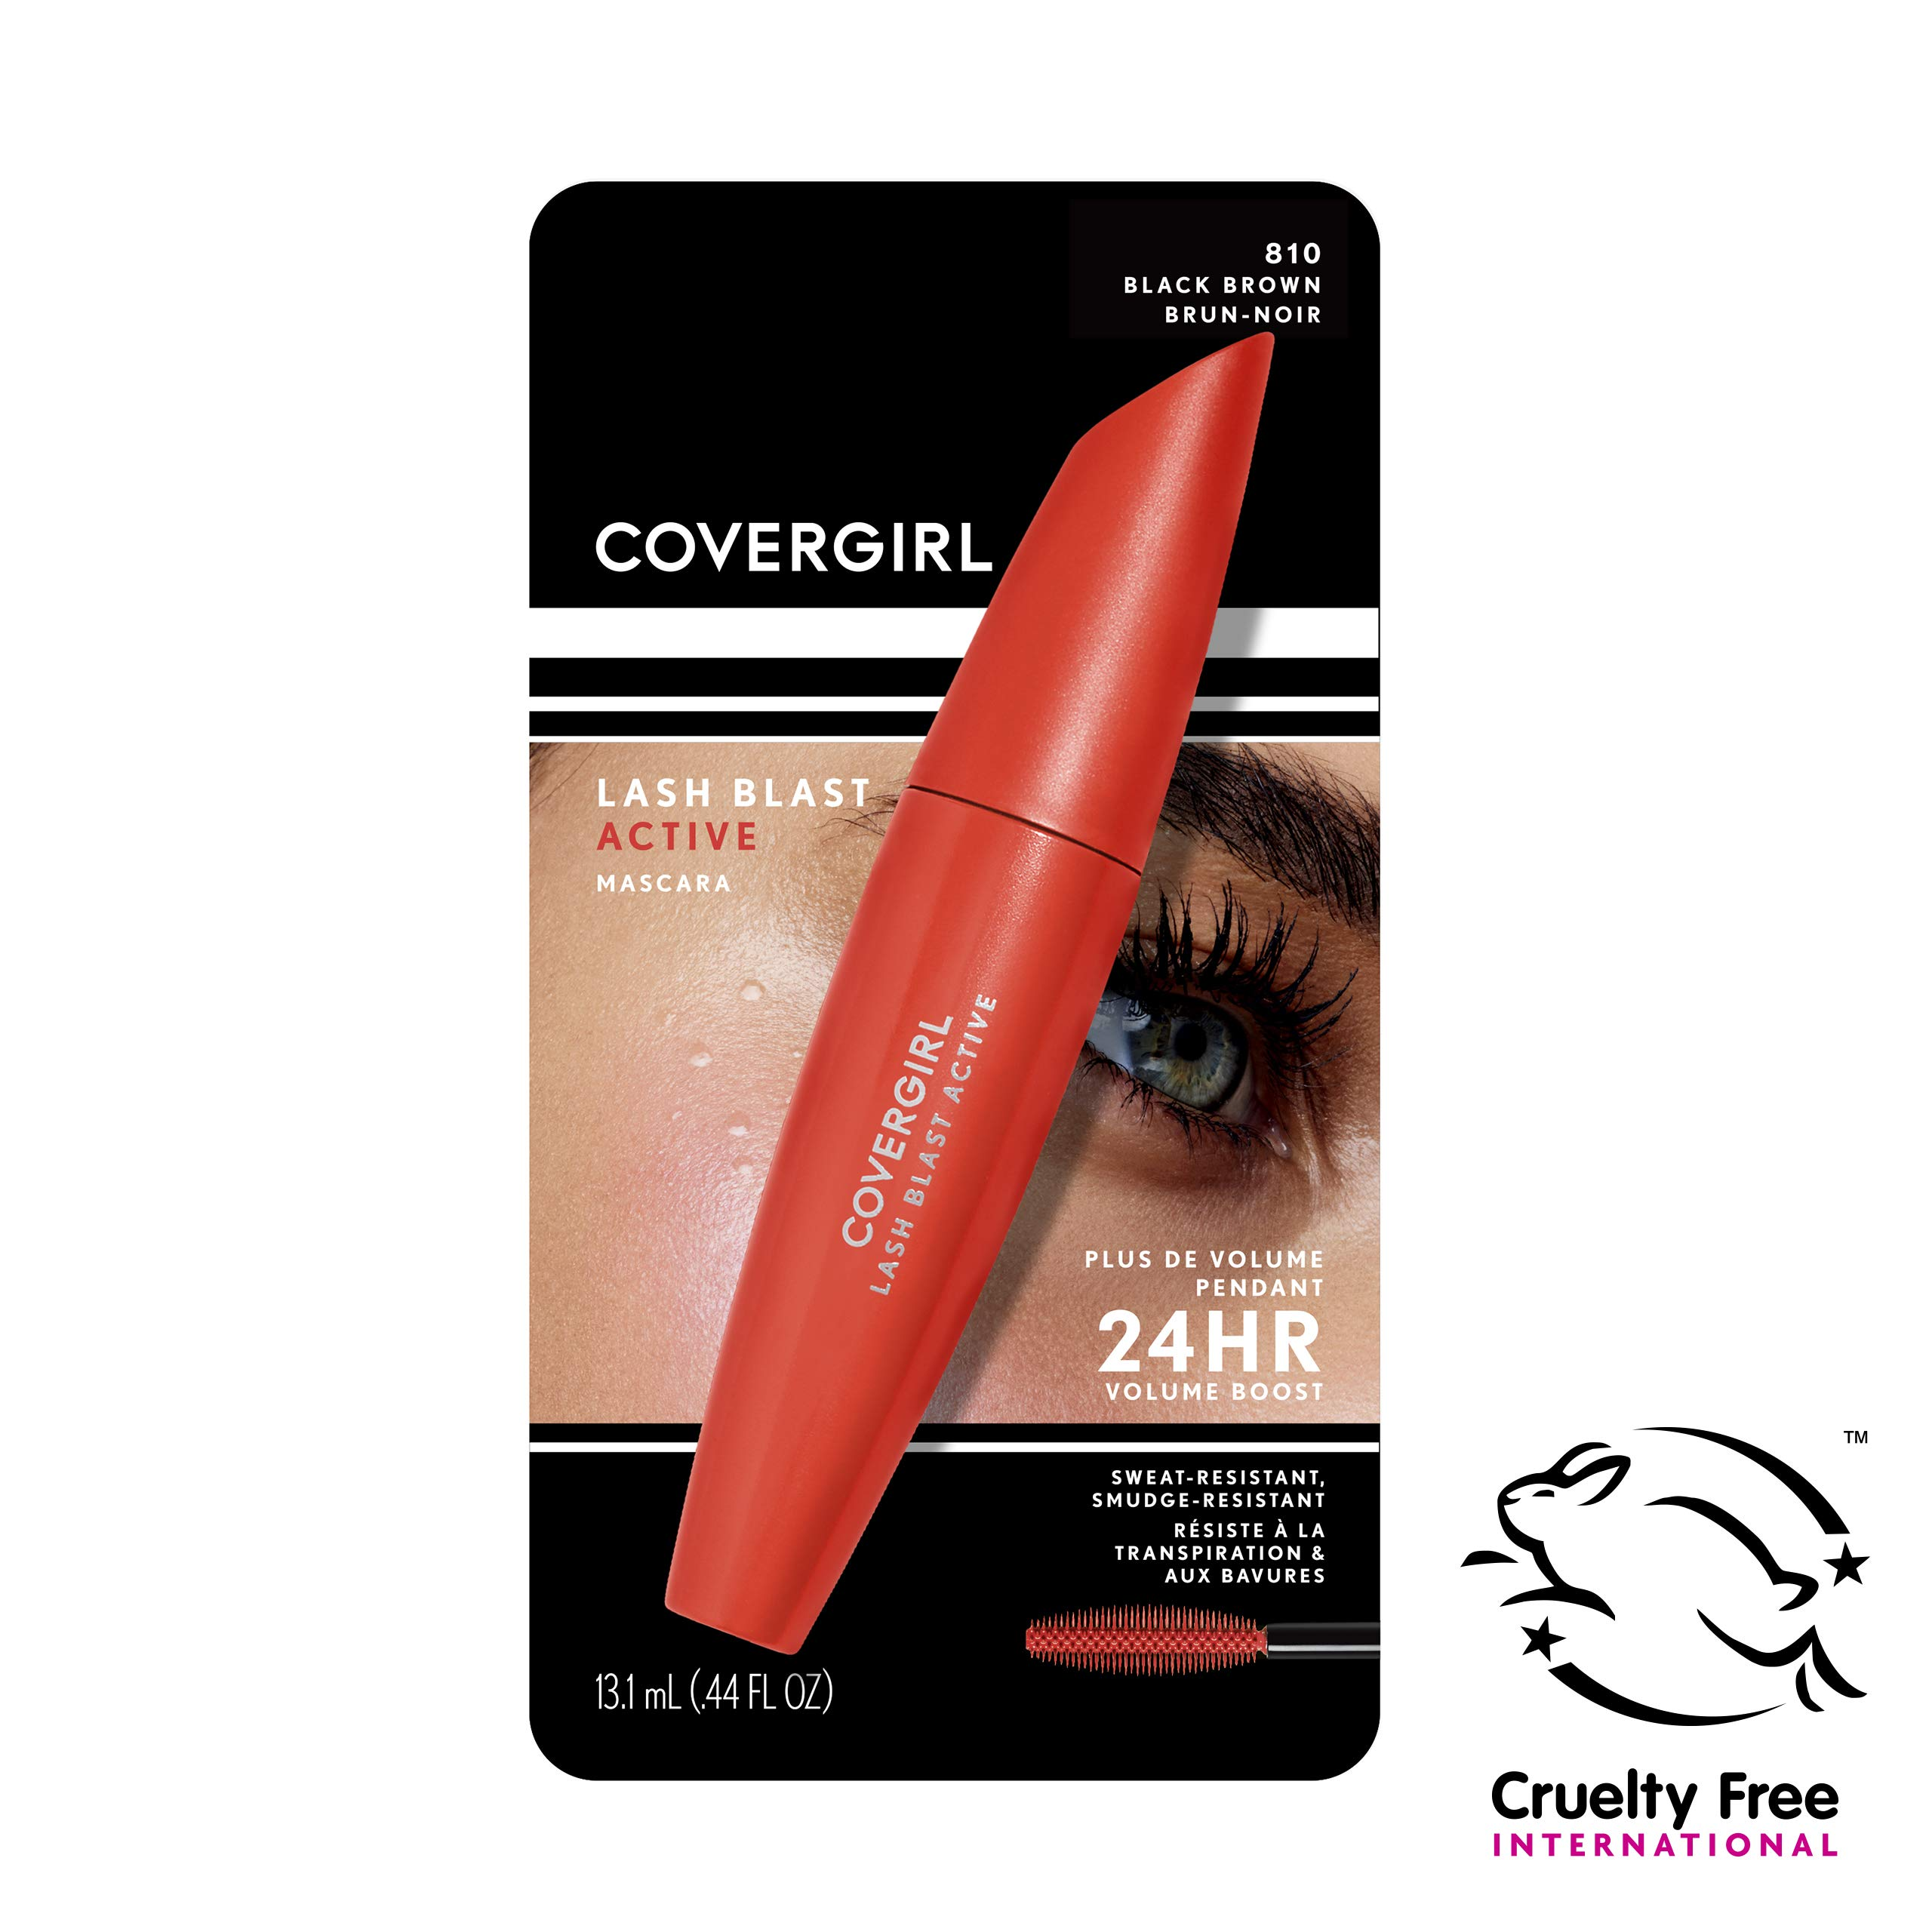 Covergirl - Covergirl Lash Blast Active Mascara, Black-brown